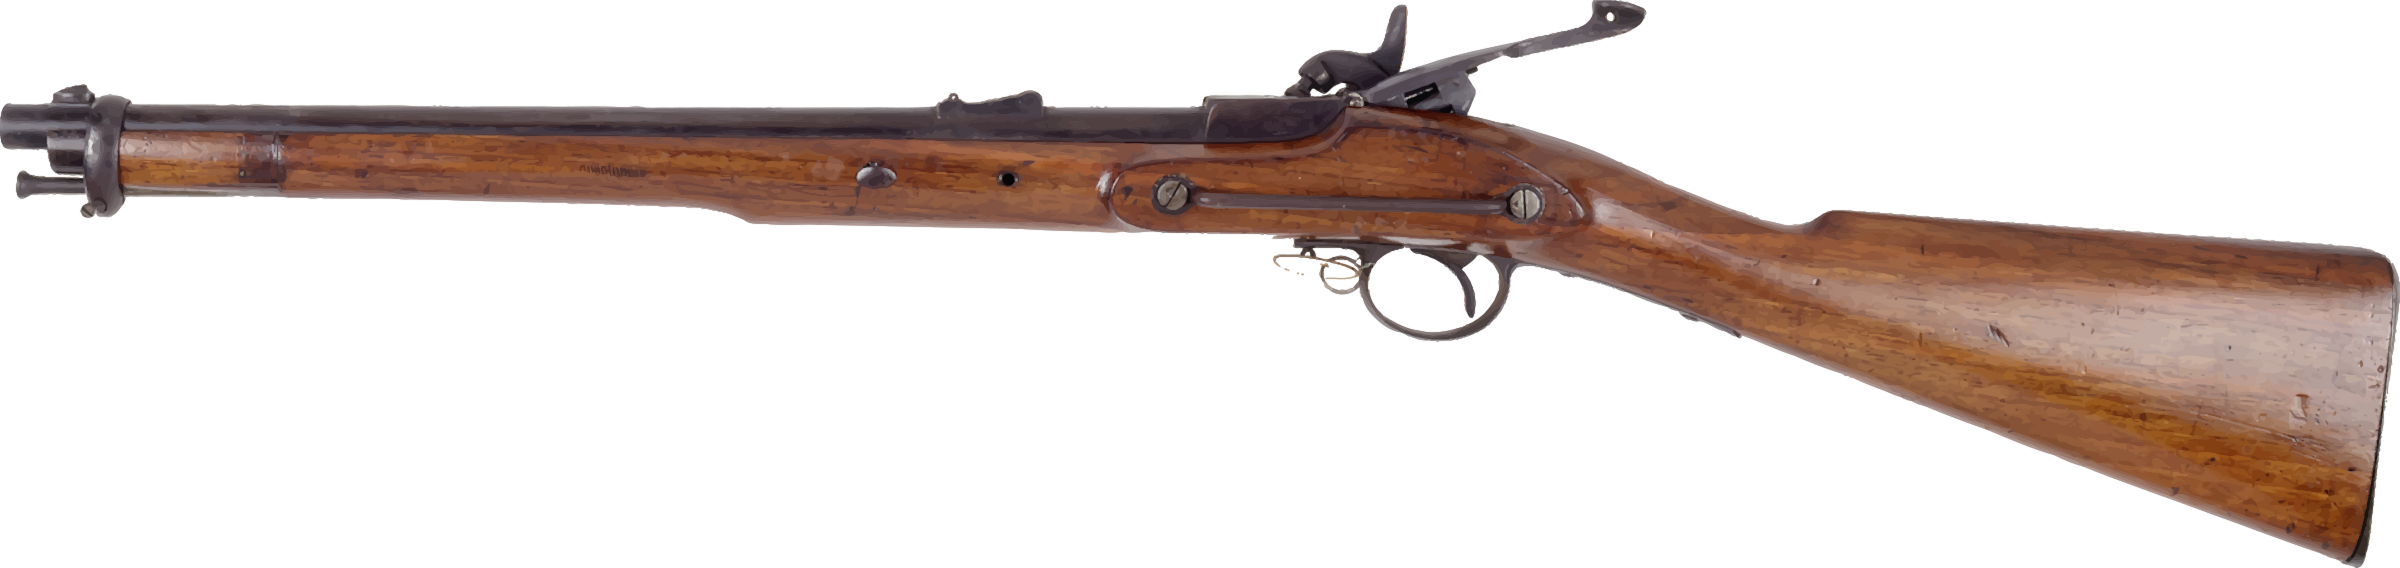 Antique rifle by Firkin